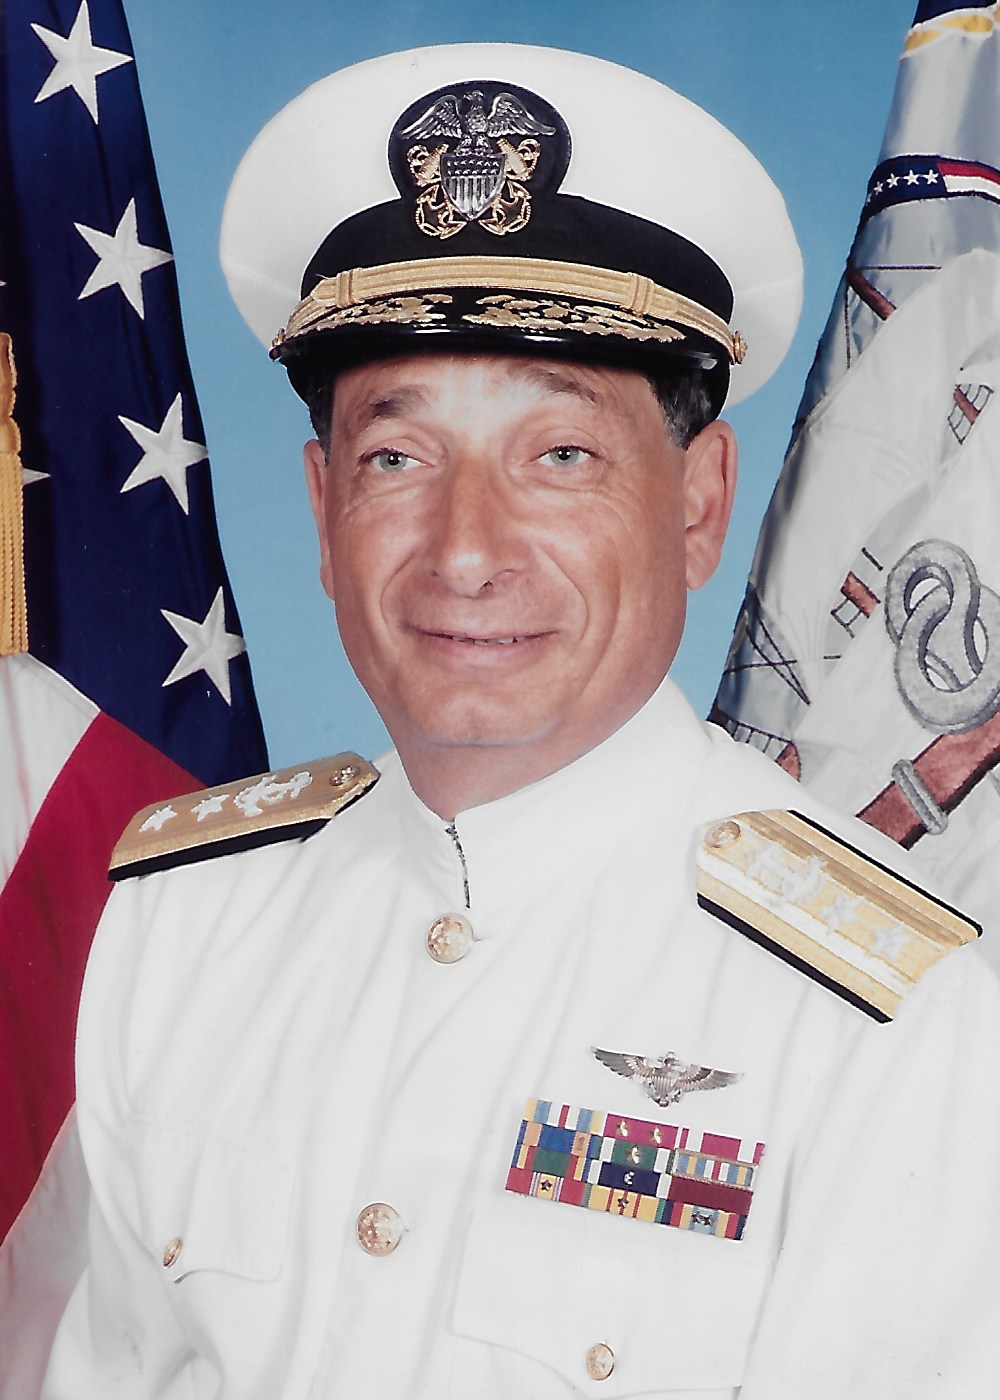 REAR ADMIRAL ANDREW A GRANUZZO USN RET BIOGRAPHY